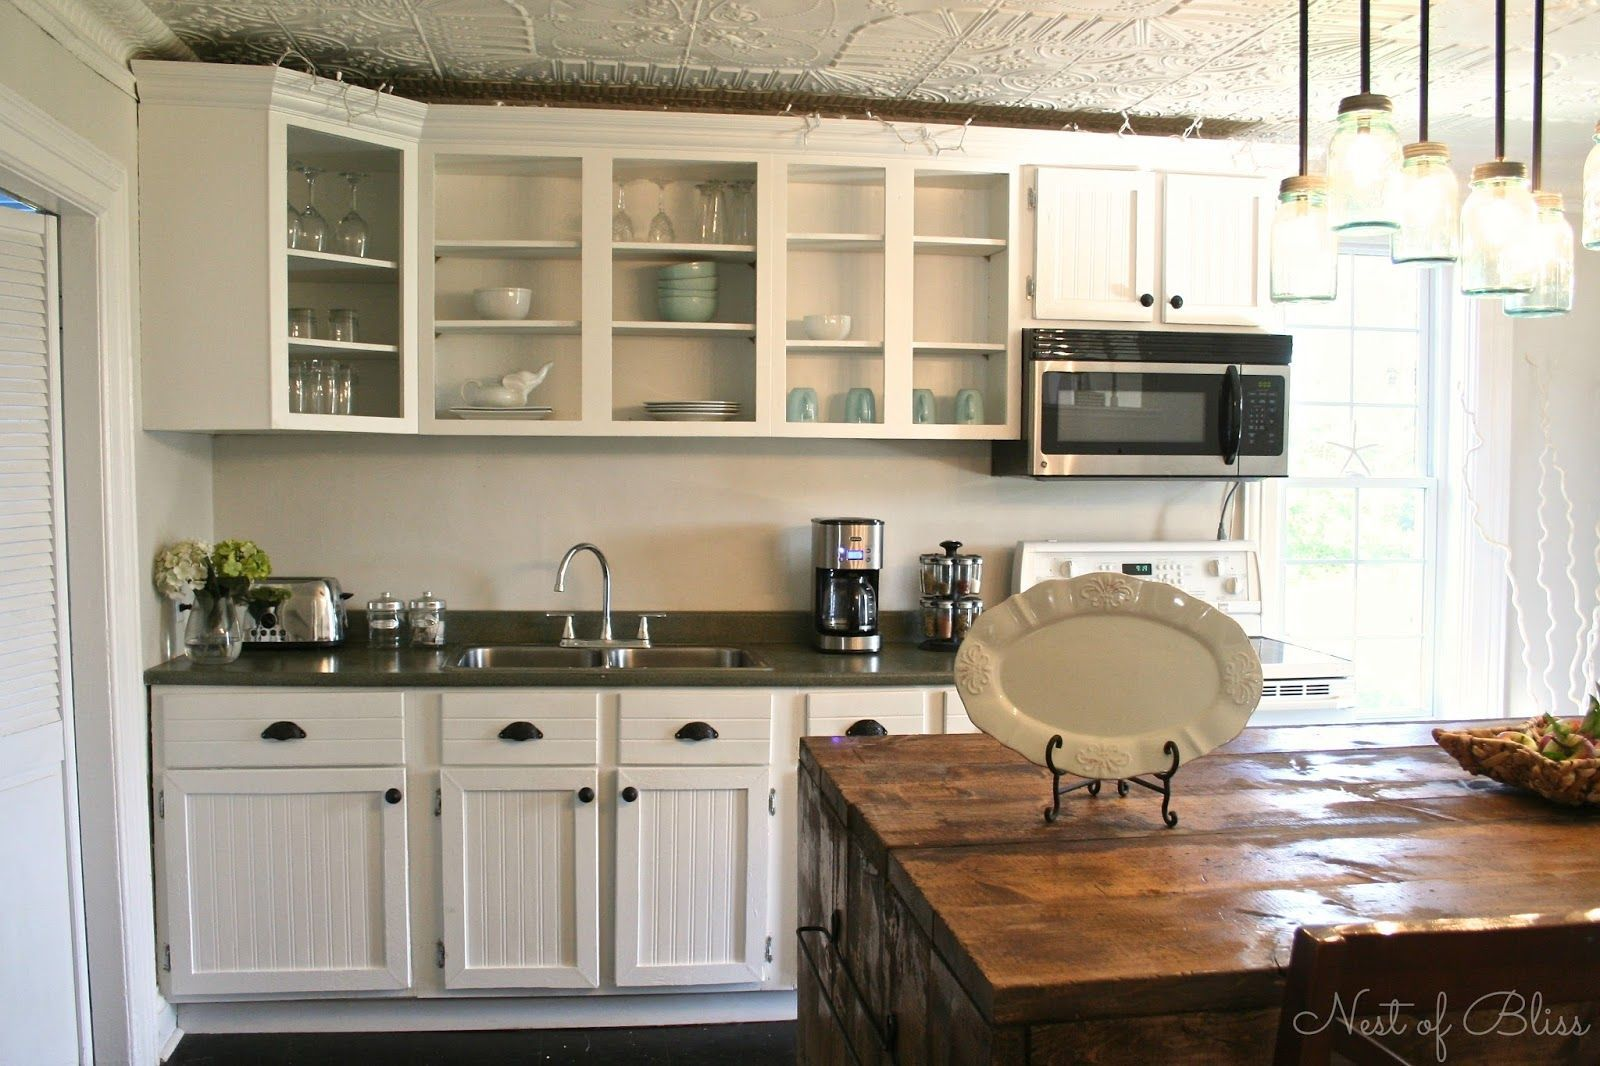 15 Ways To Redo Your Kitchen Cabinets Without Breaking The Bank In 2020 Beautiful Kitchen Cabinets Cheap Kitchen Cabinets Budget Kitchen Remodel